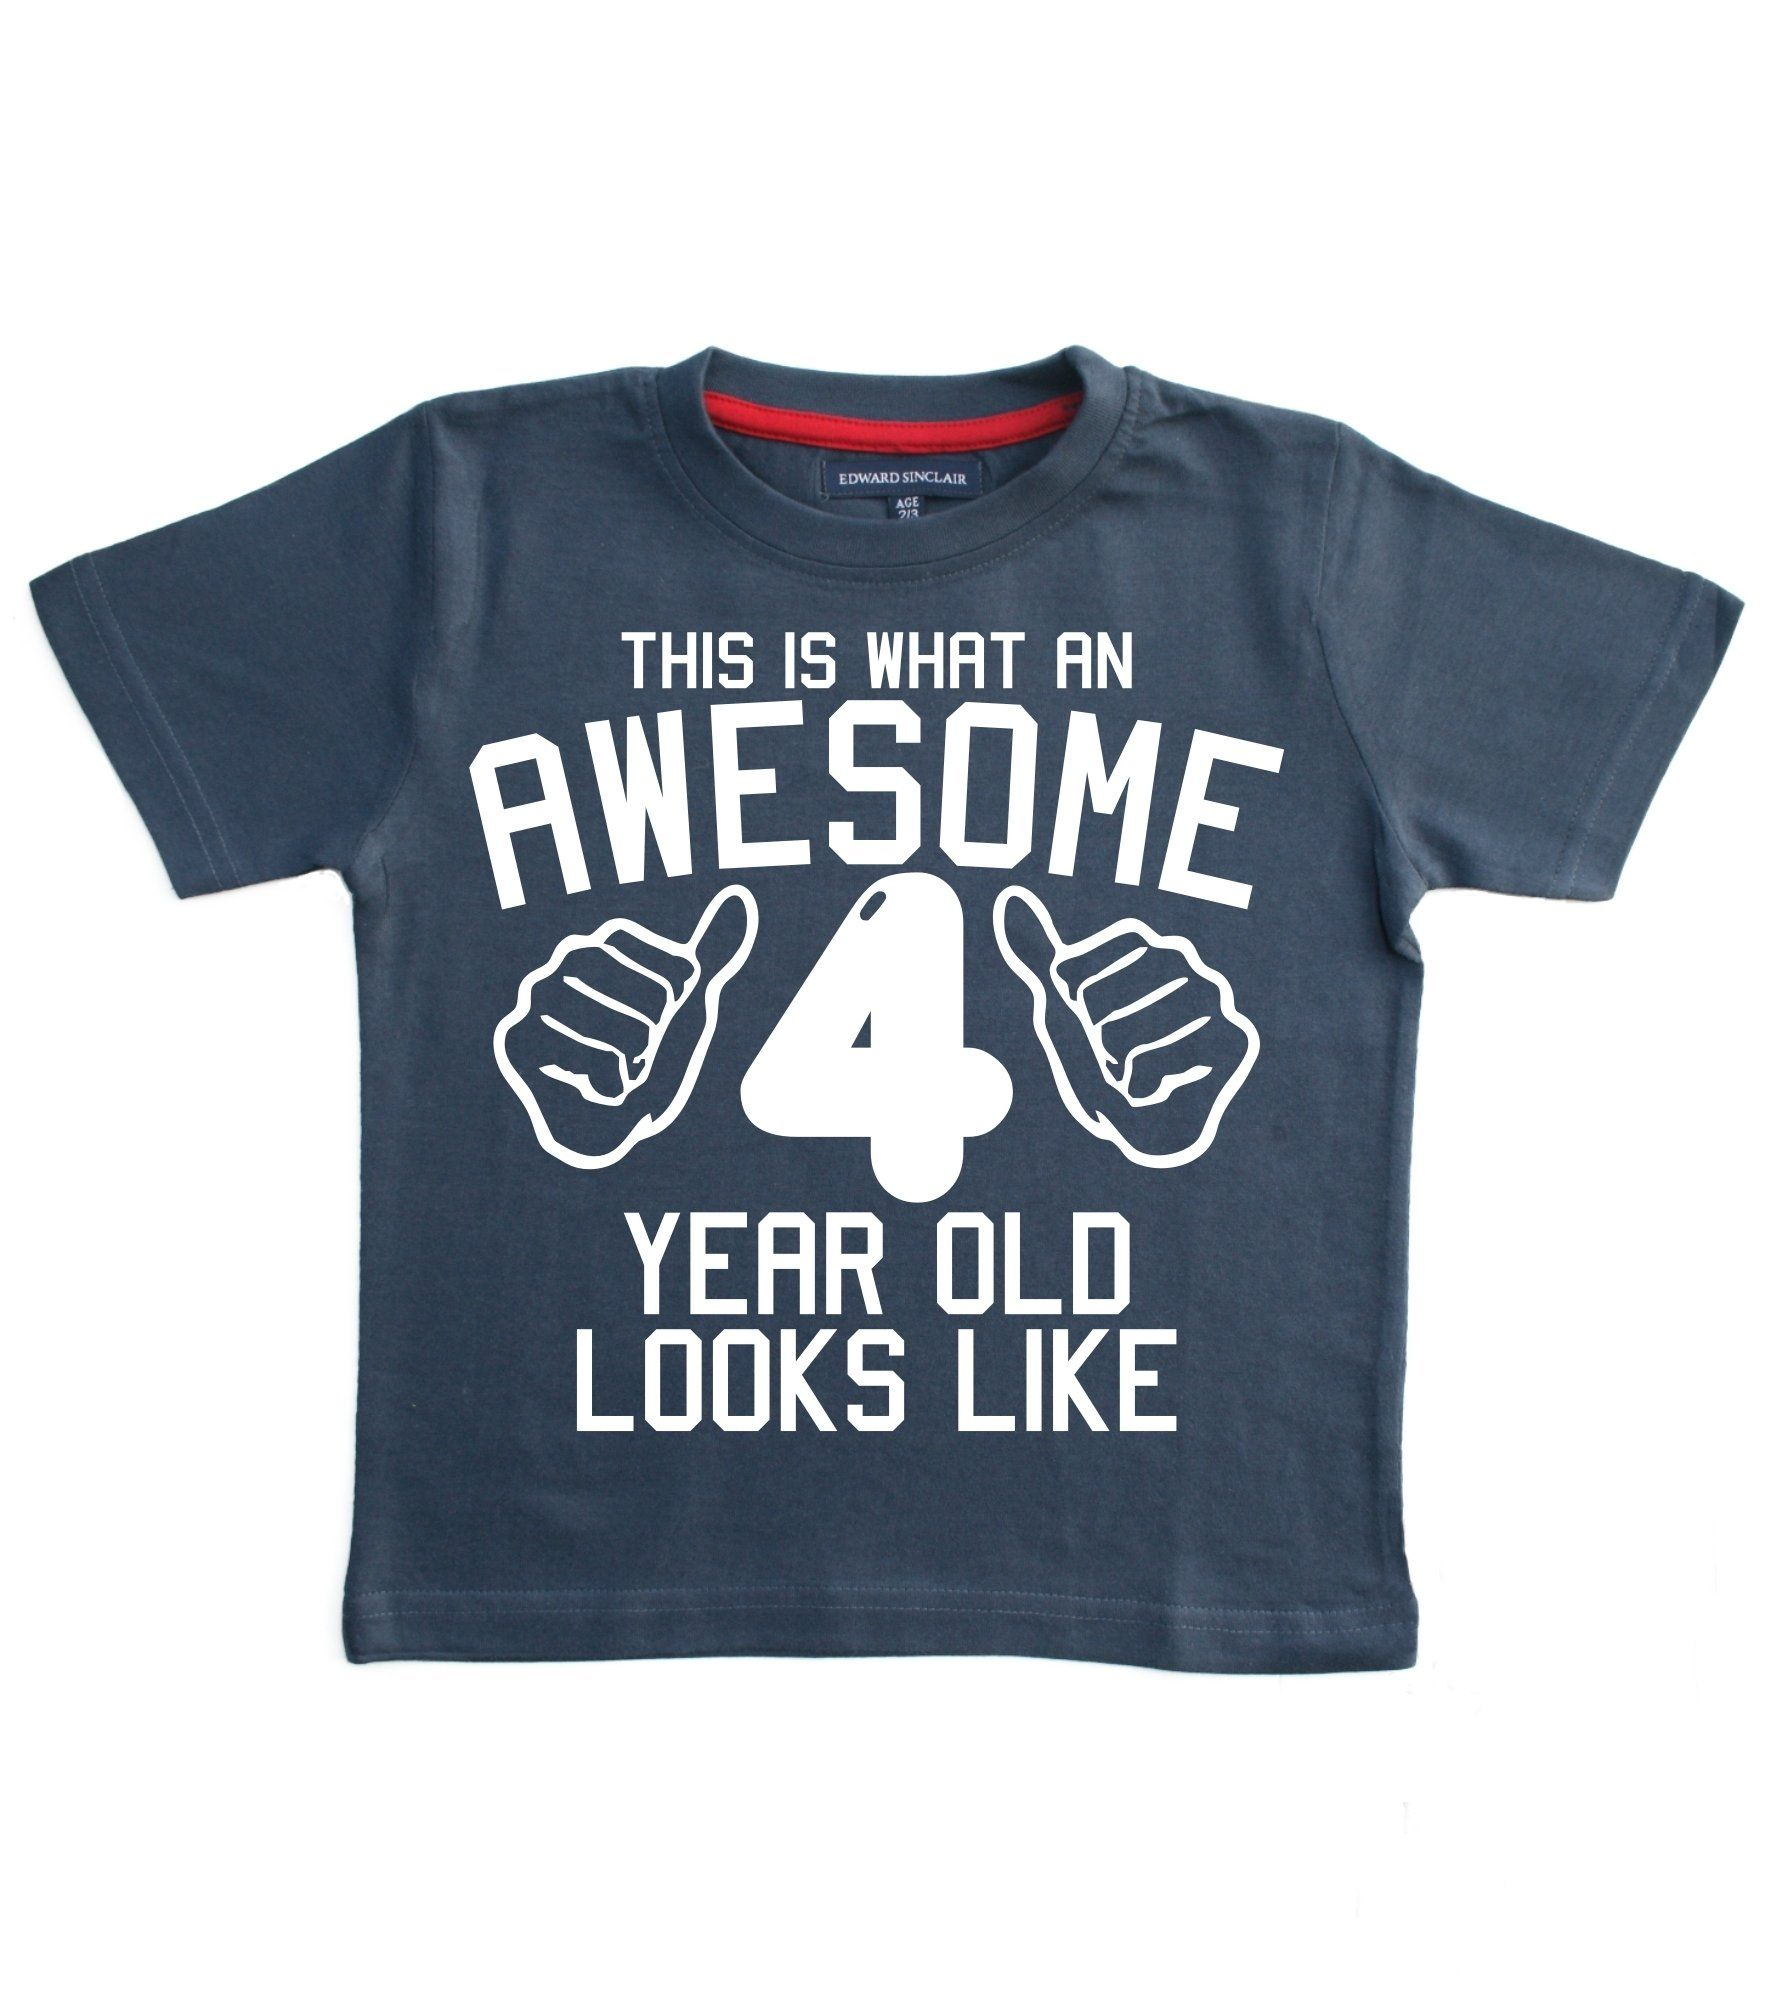 THIS WHAT AN AWESOME 4 YEAR OLD LOOKS LIKE Navy Boys 4th Birthday T Shirt In Size 3 Years With A White Print Edward Sinclair